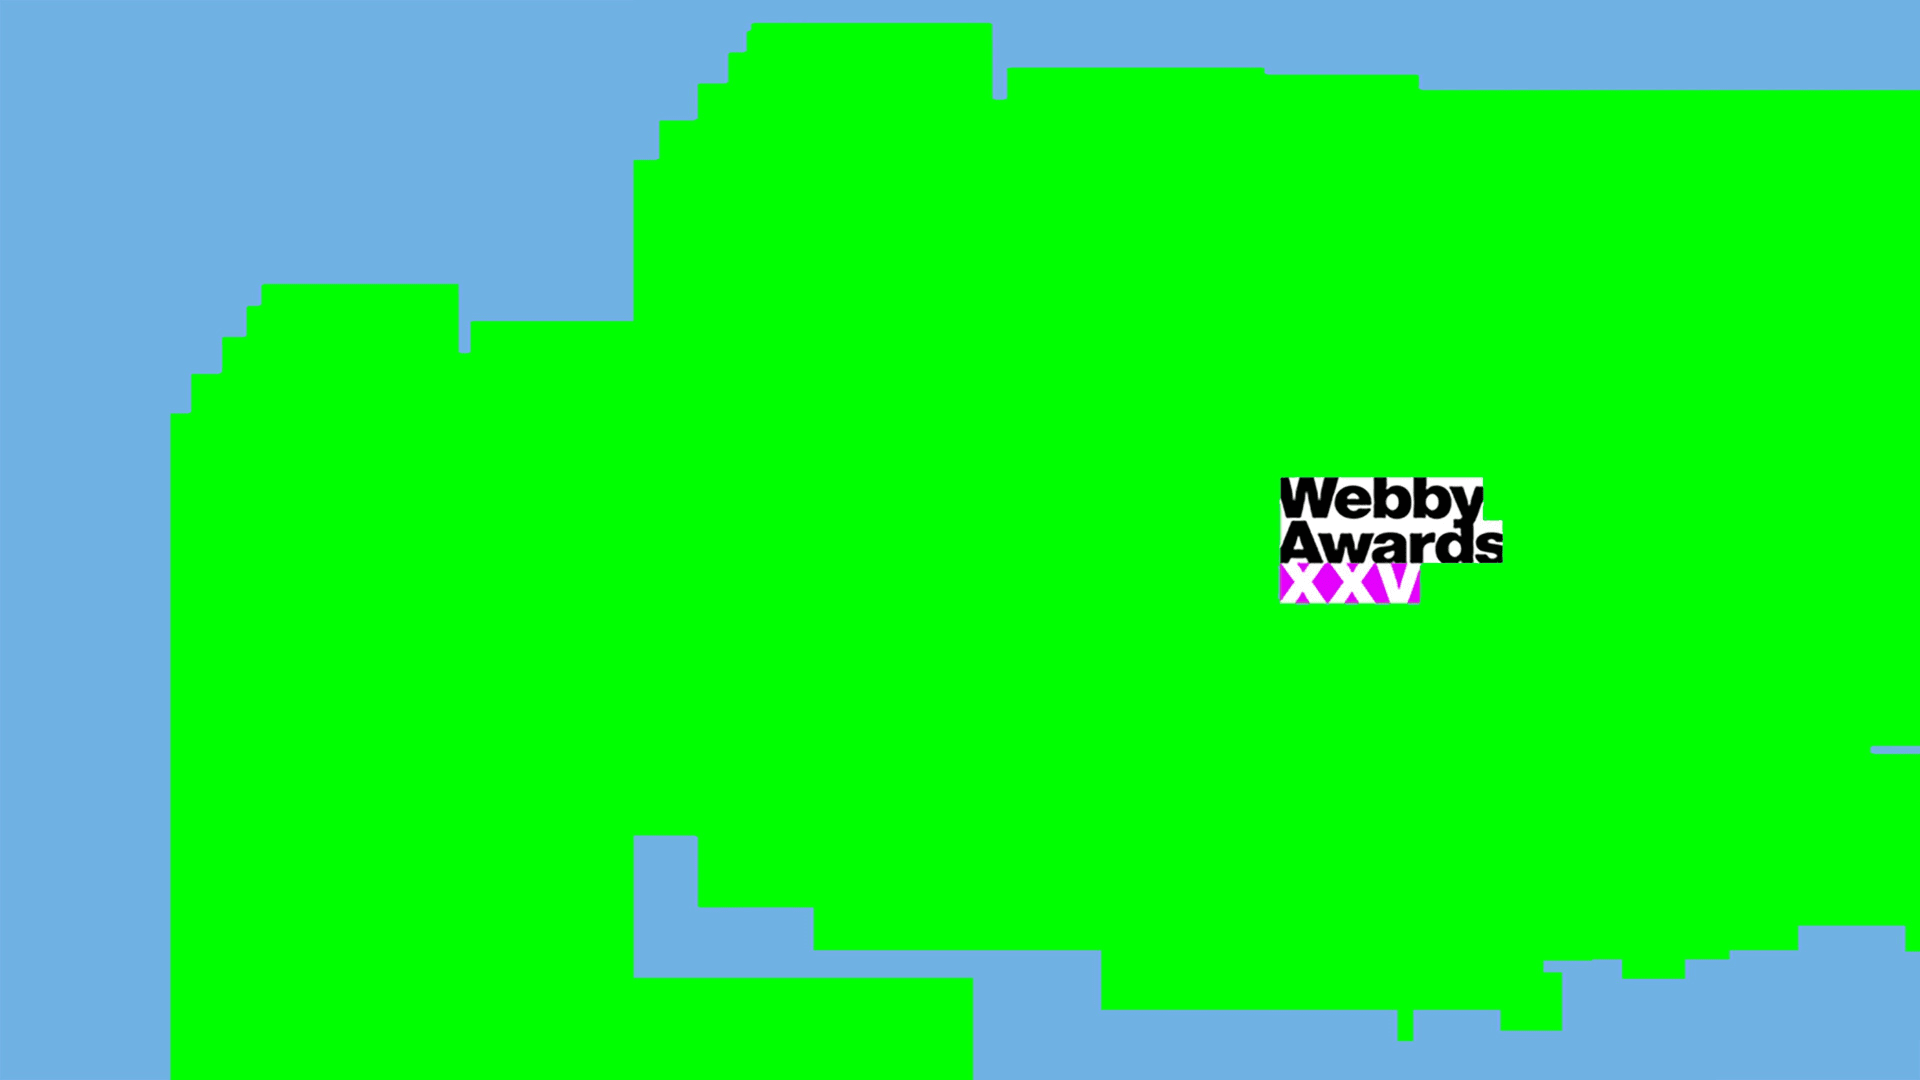 neon green background with Webby Awards signage